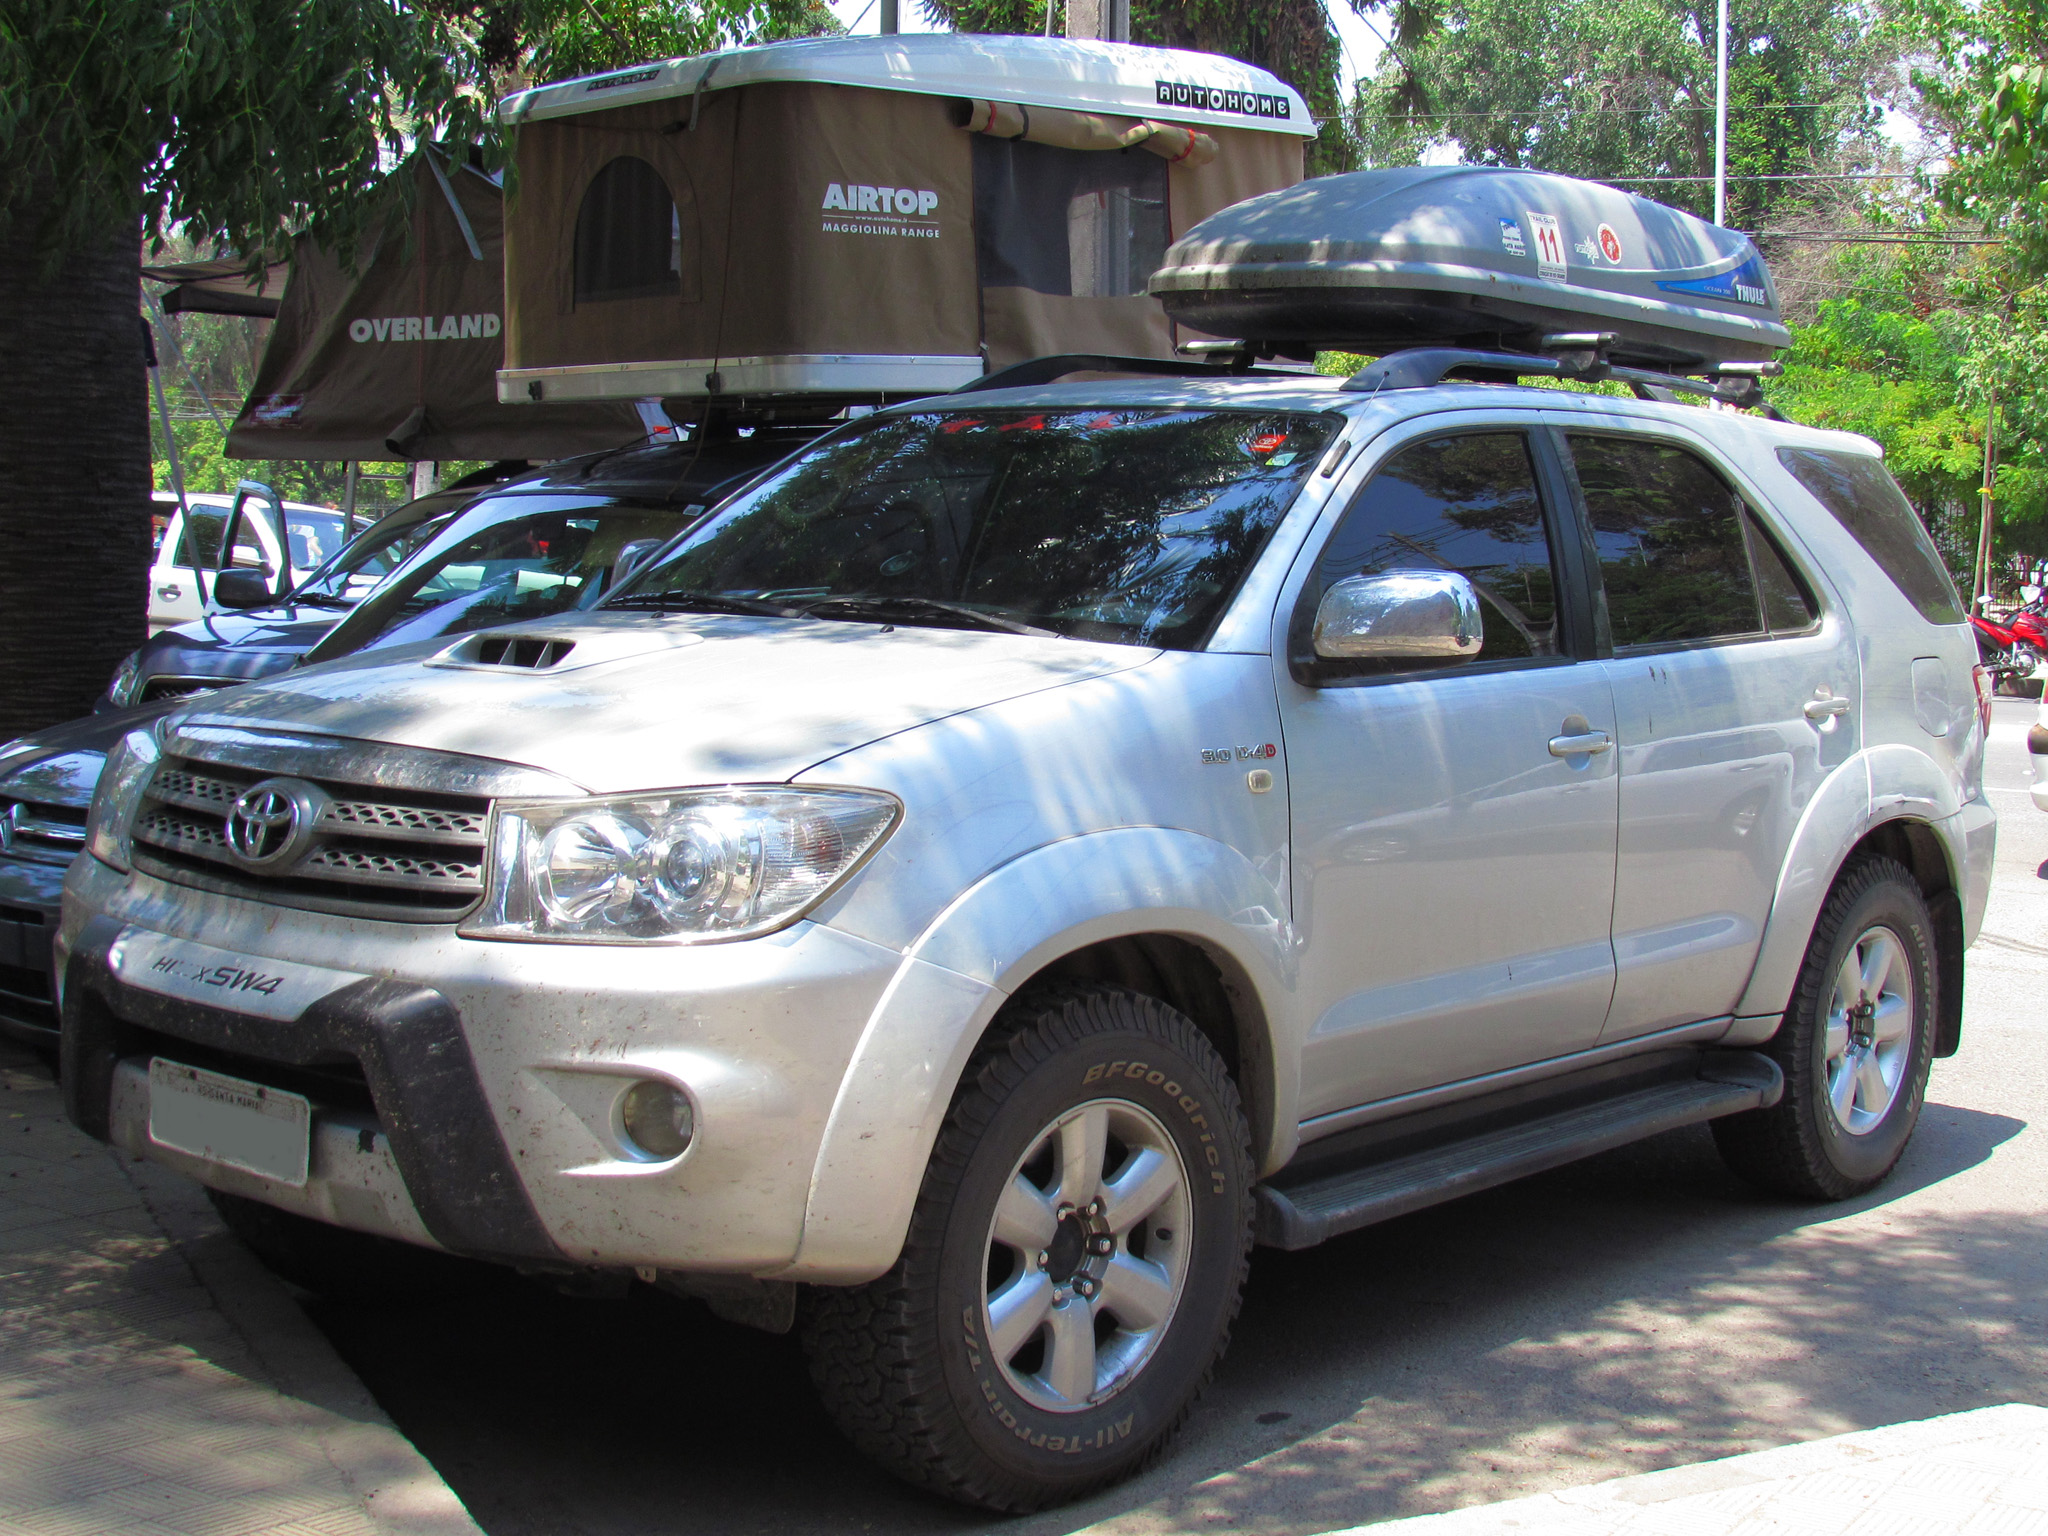 Toyota Hilux SW4 3.0 D-4D 2009 | Flickr - Photo Sharing!